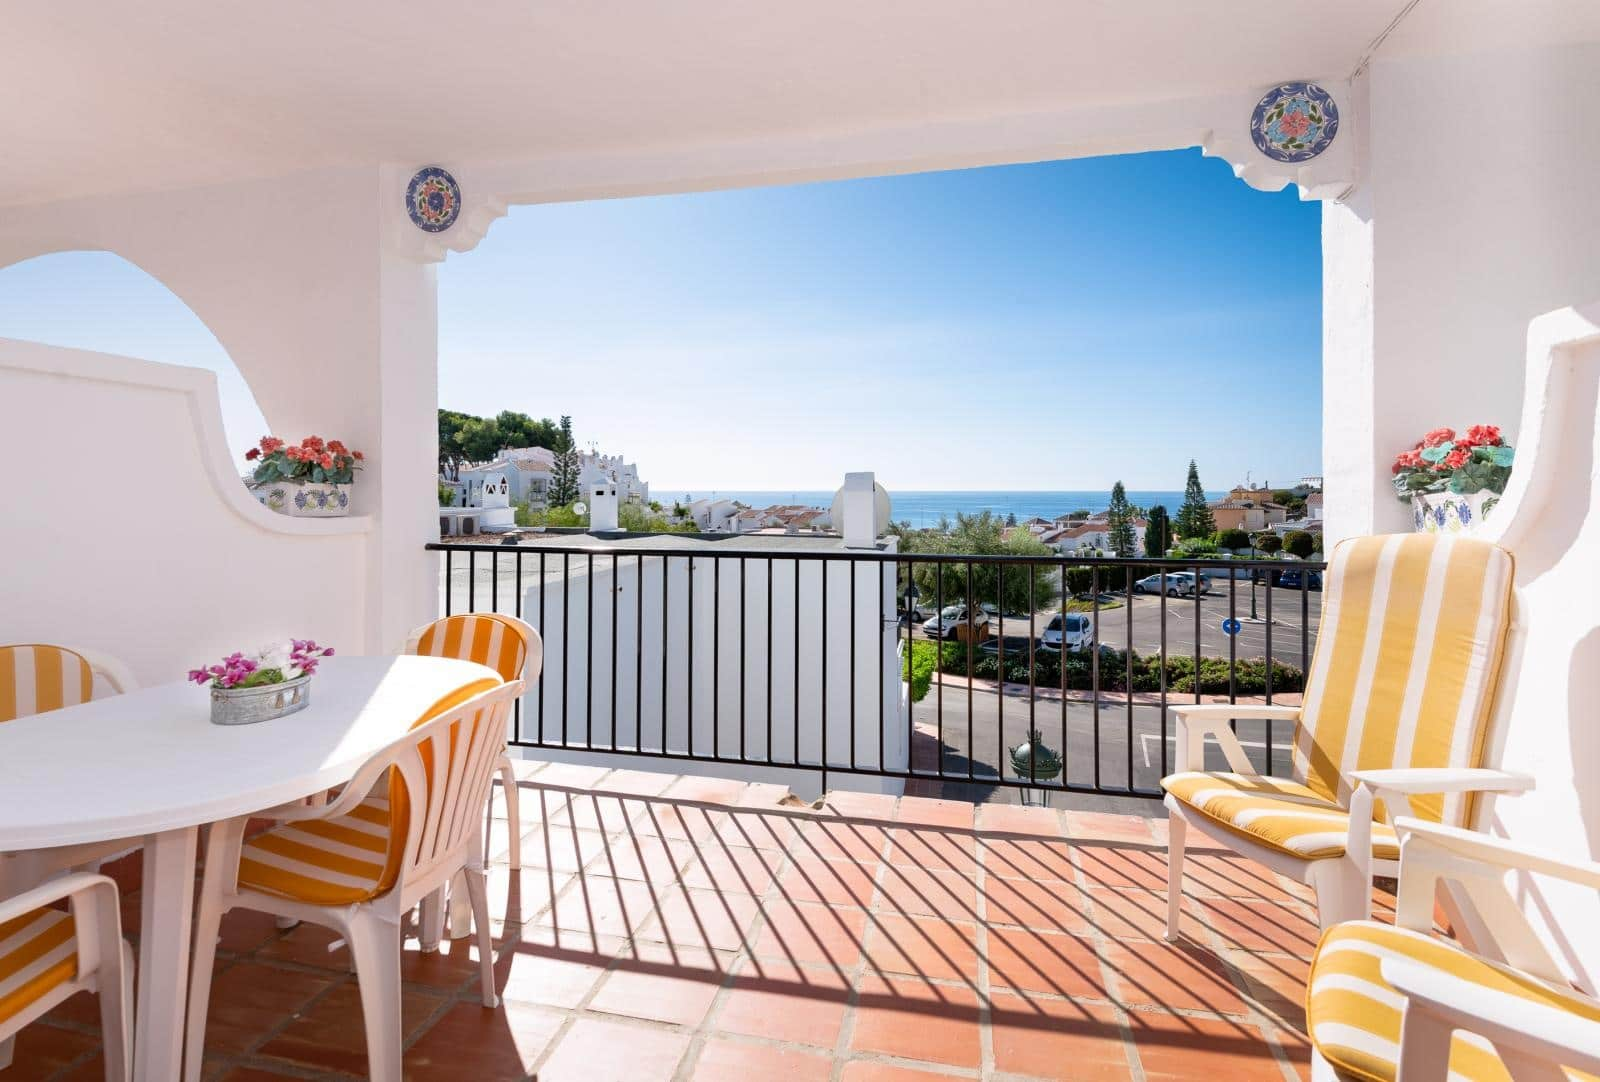 2 bedroom Finca/Country House for sale in Nerja with pool - € 249,500 (Ref: 4122058)